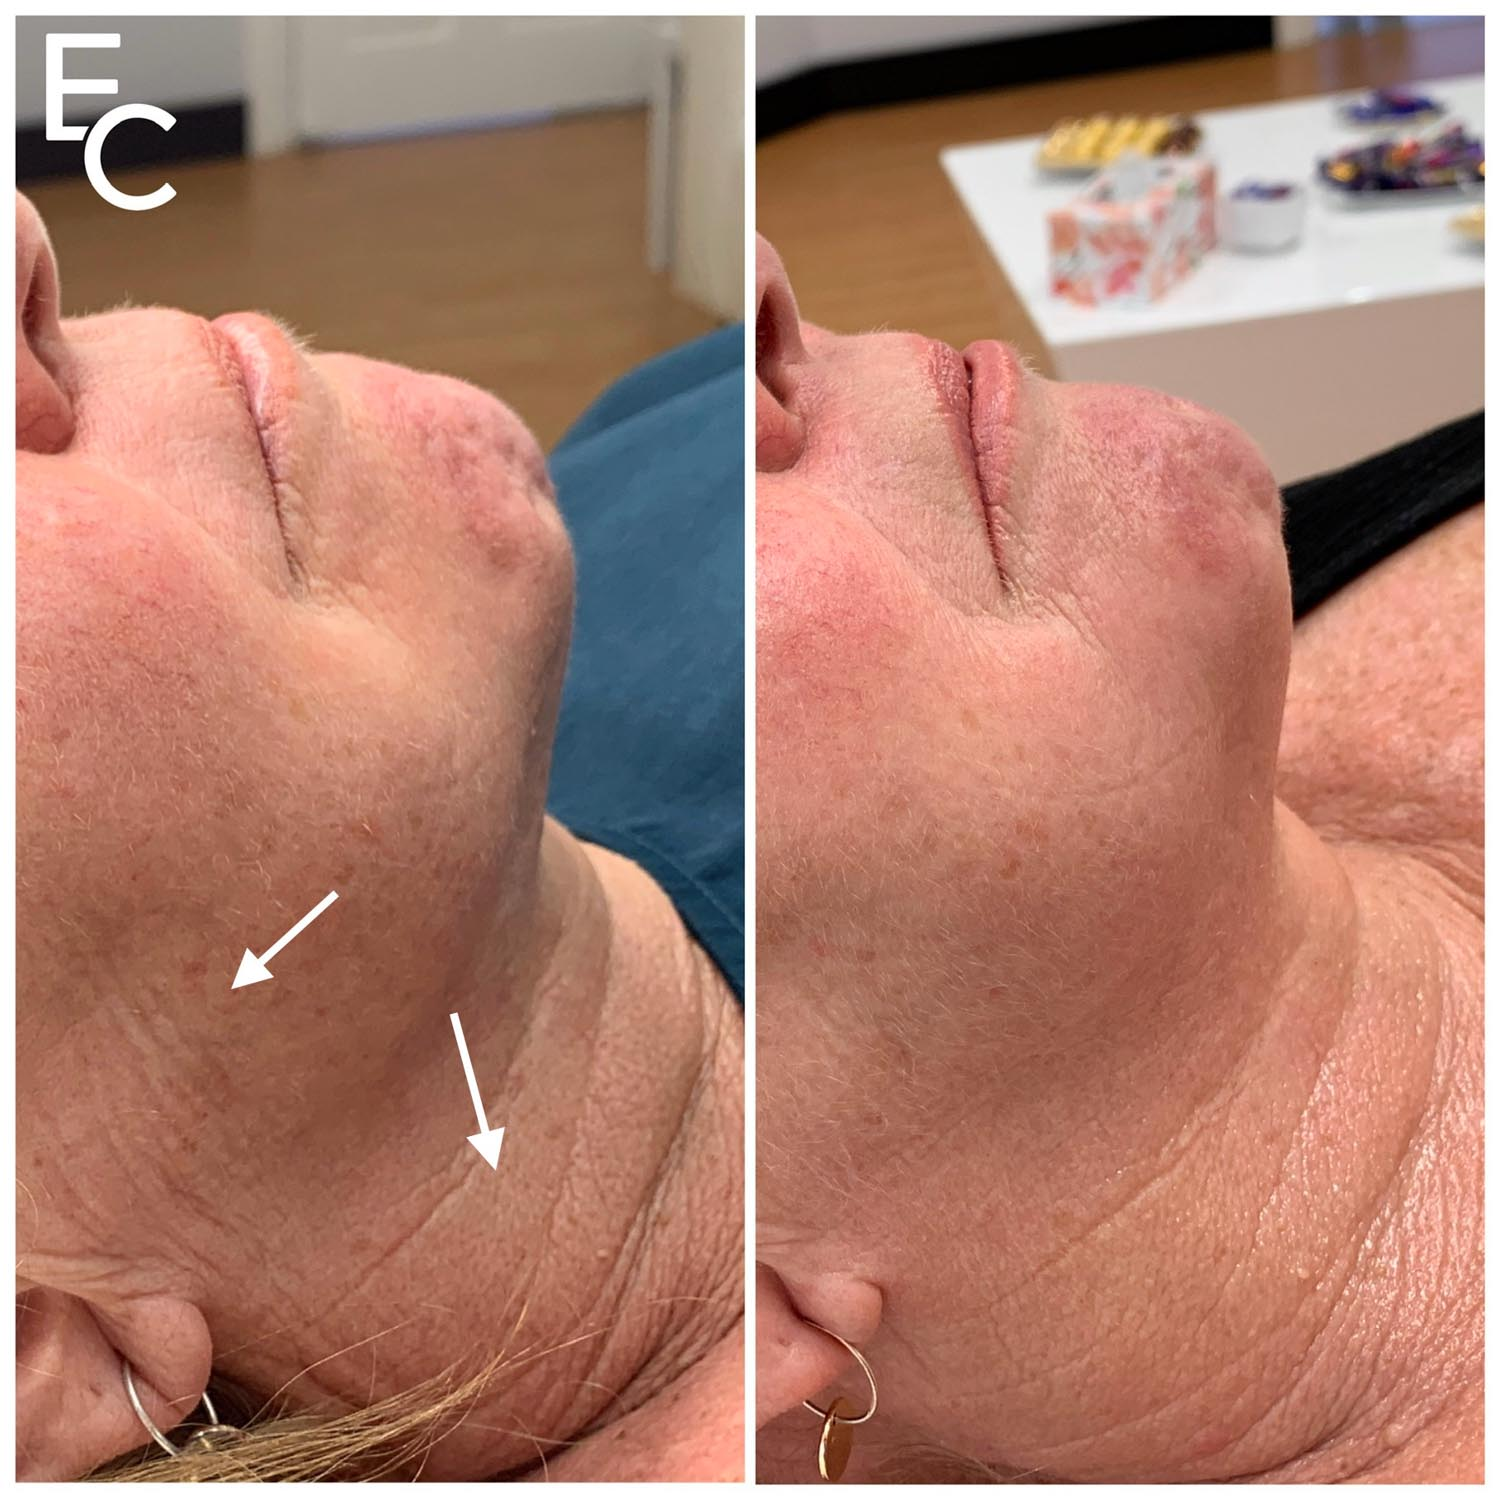 neck wrinkles improved by microneedling